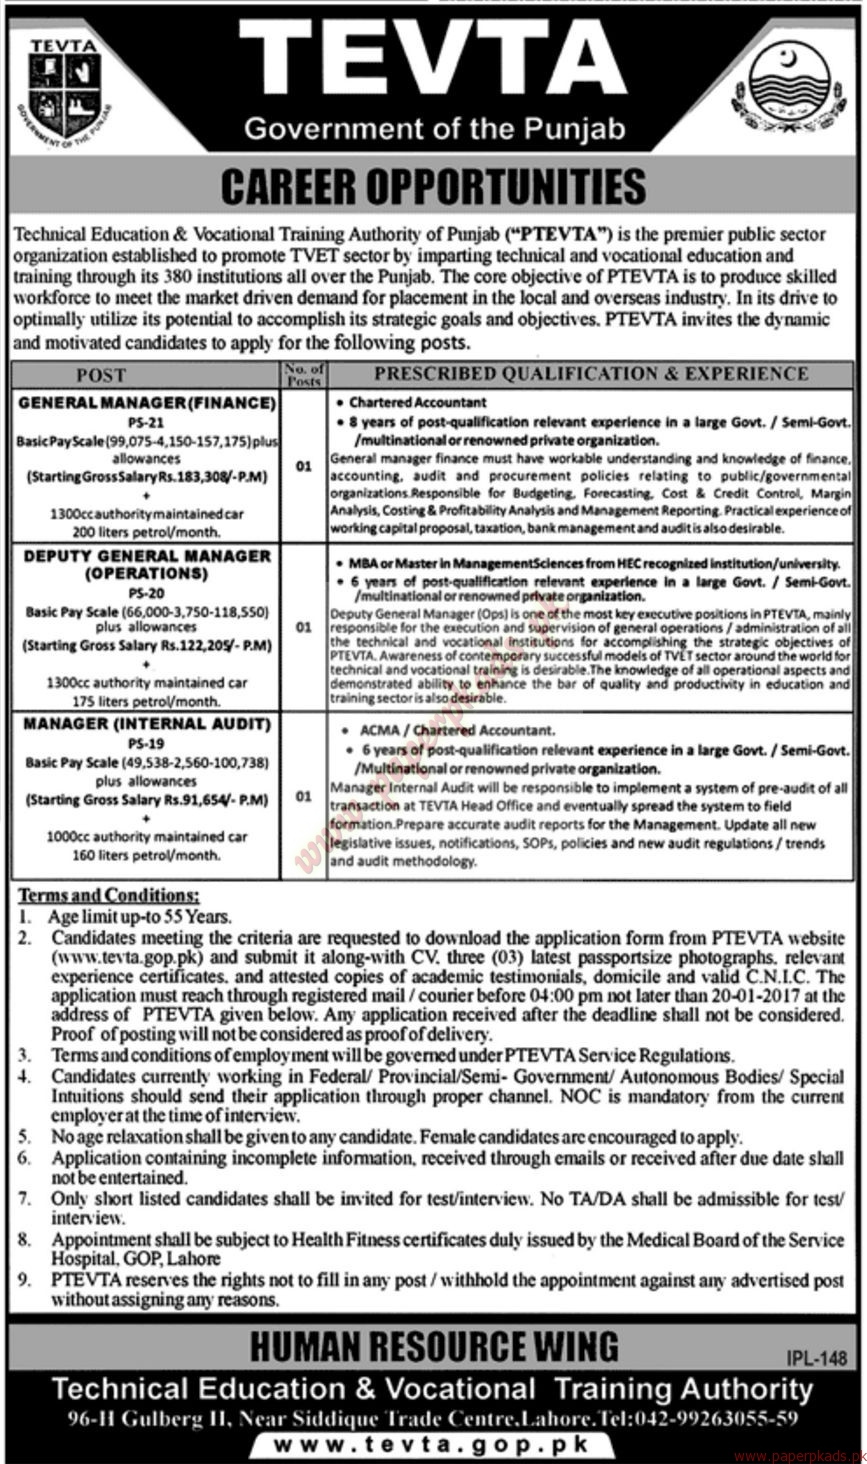 TEVTA - Government of the Punjab Jobs